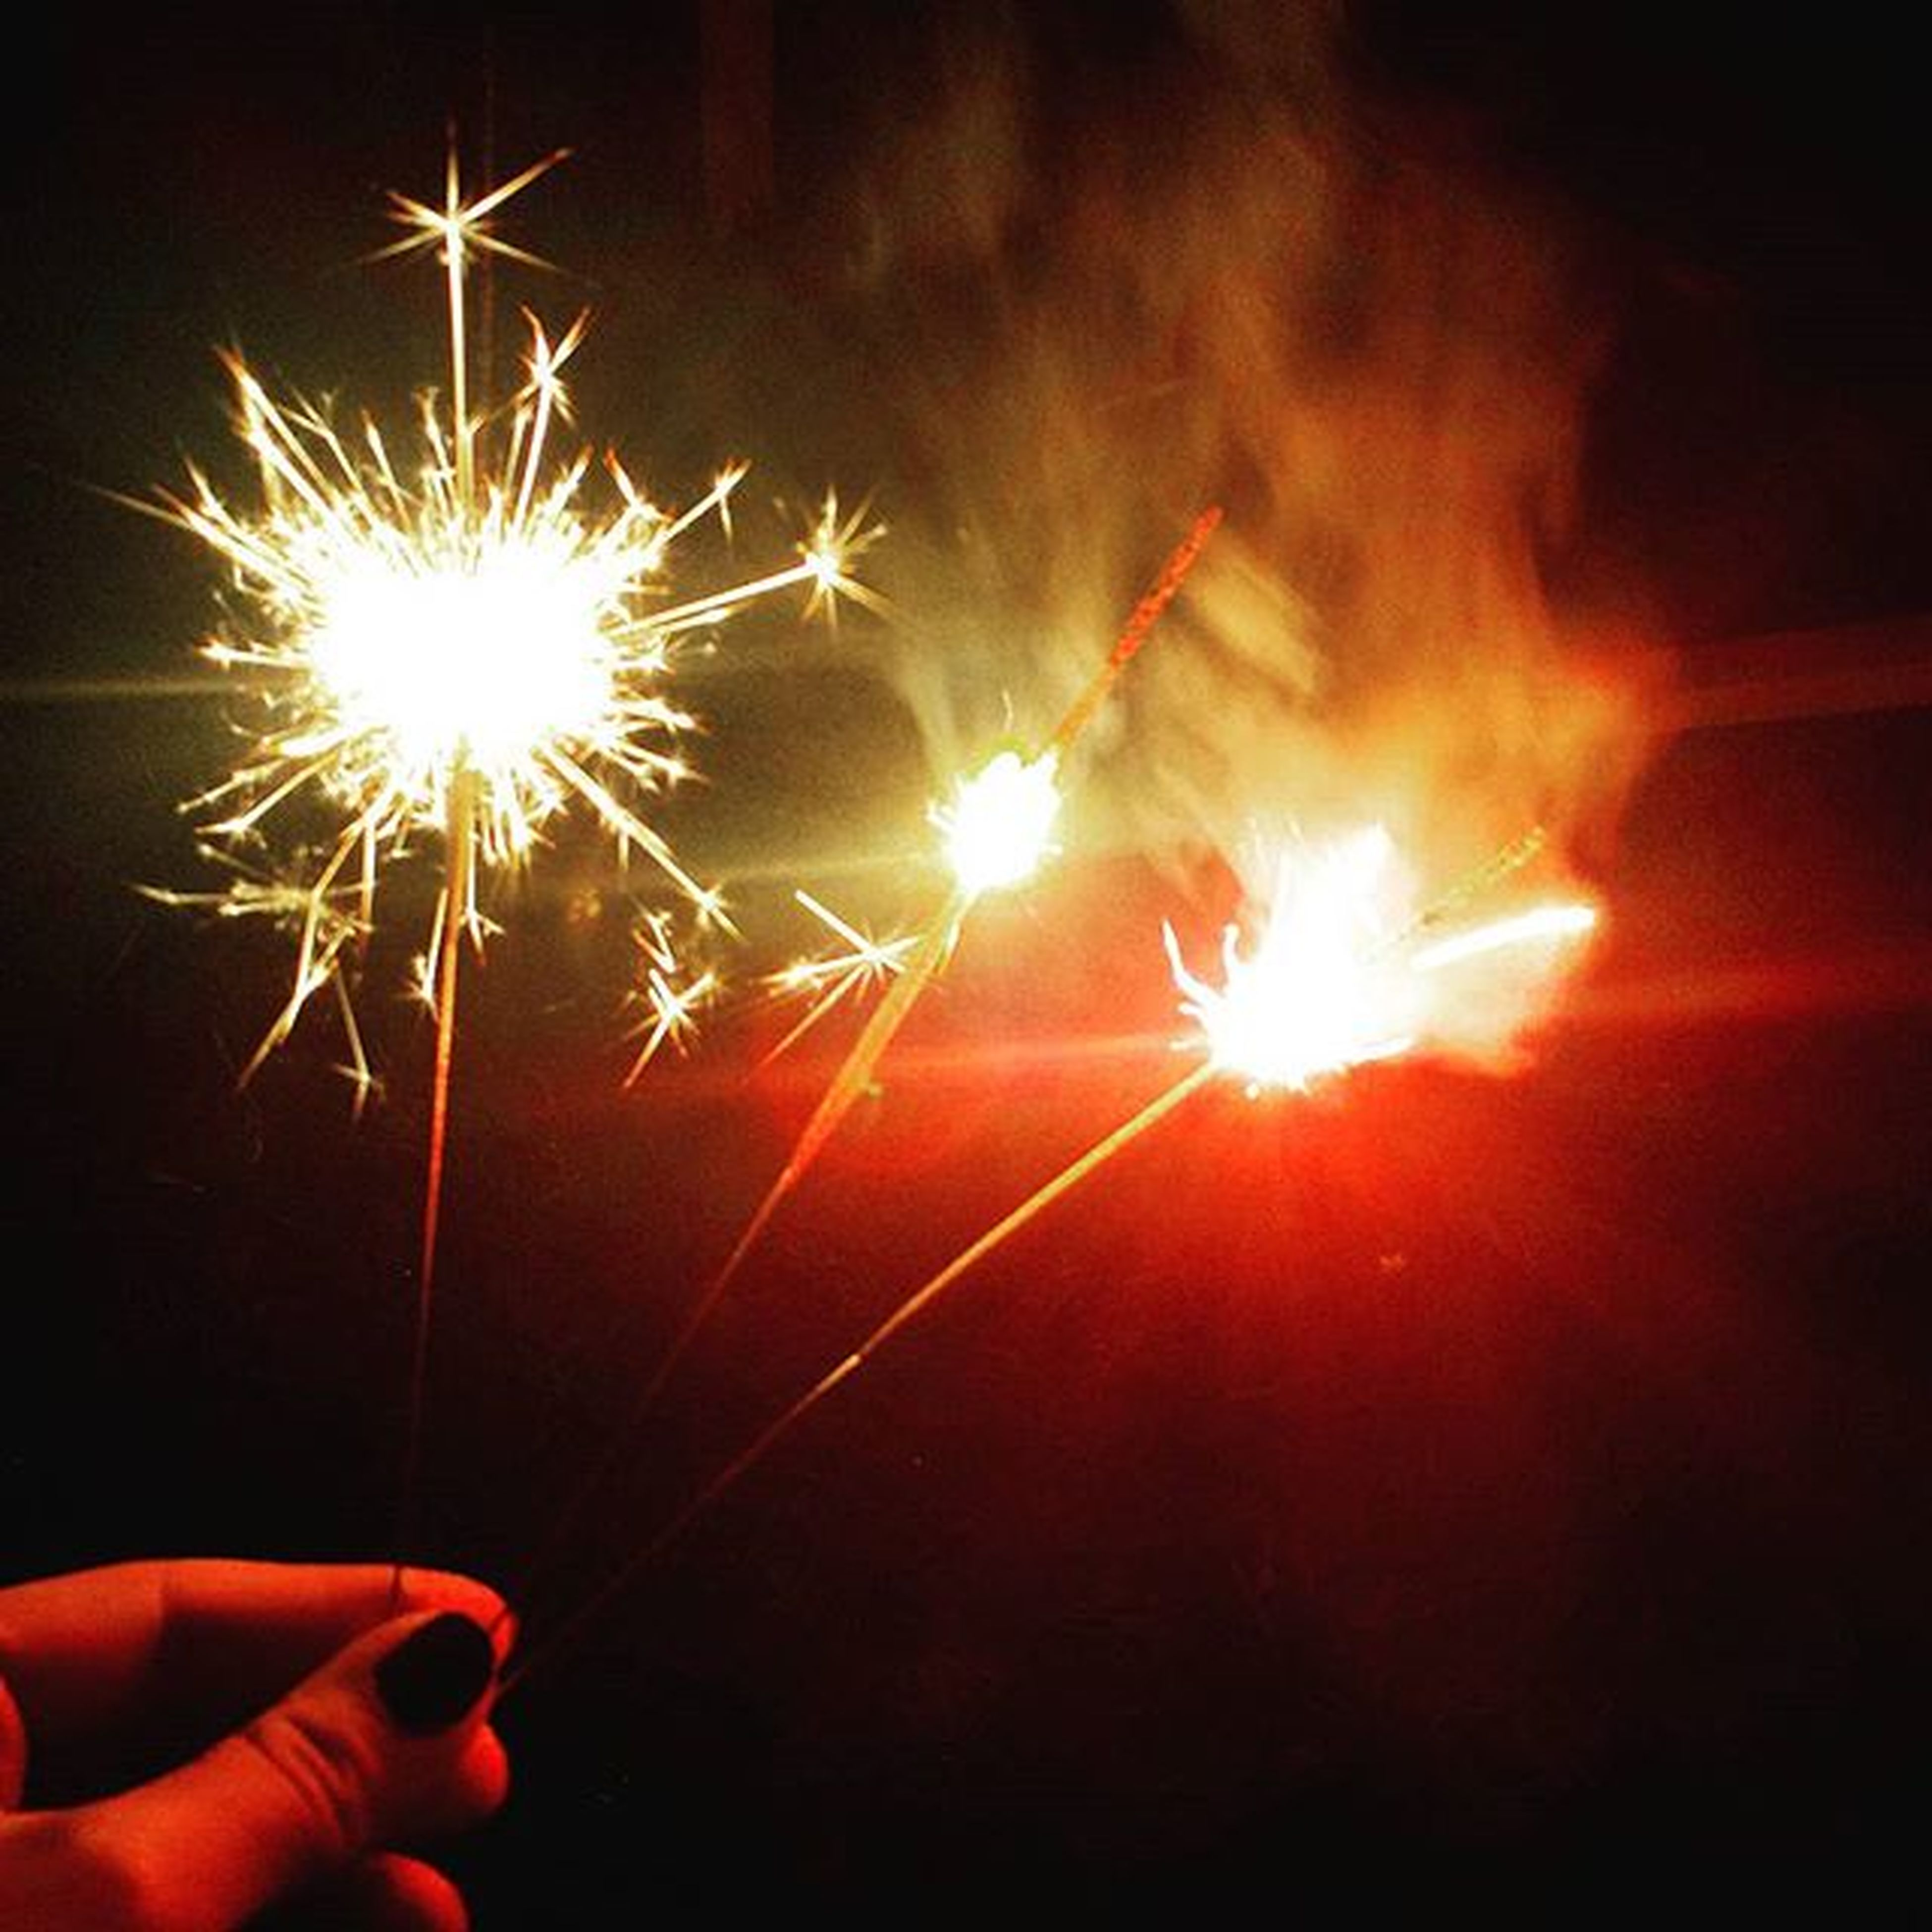 person, night, illuminated, glowing, holding, part of, unrecognizable person, celebration, cropped, burning, human finger, fire - natural phenomenon, event, lifestyles, leisure activity, sparkler, exploding